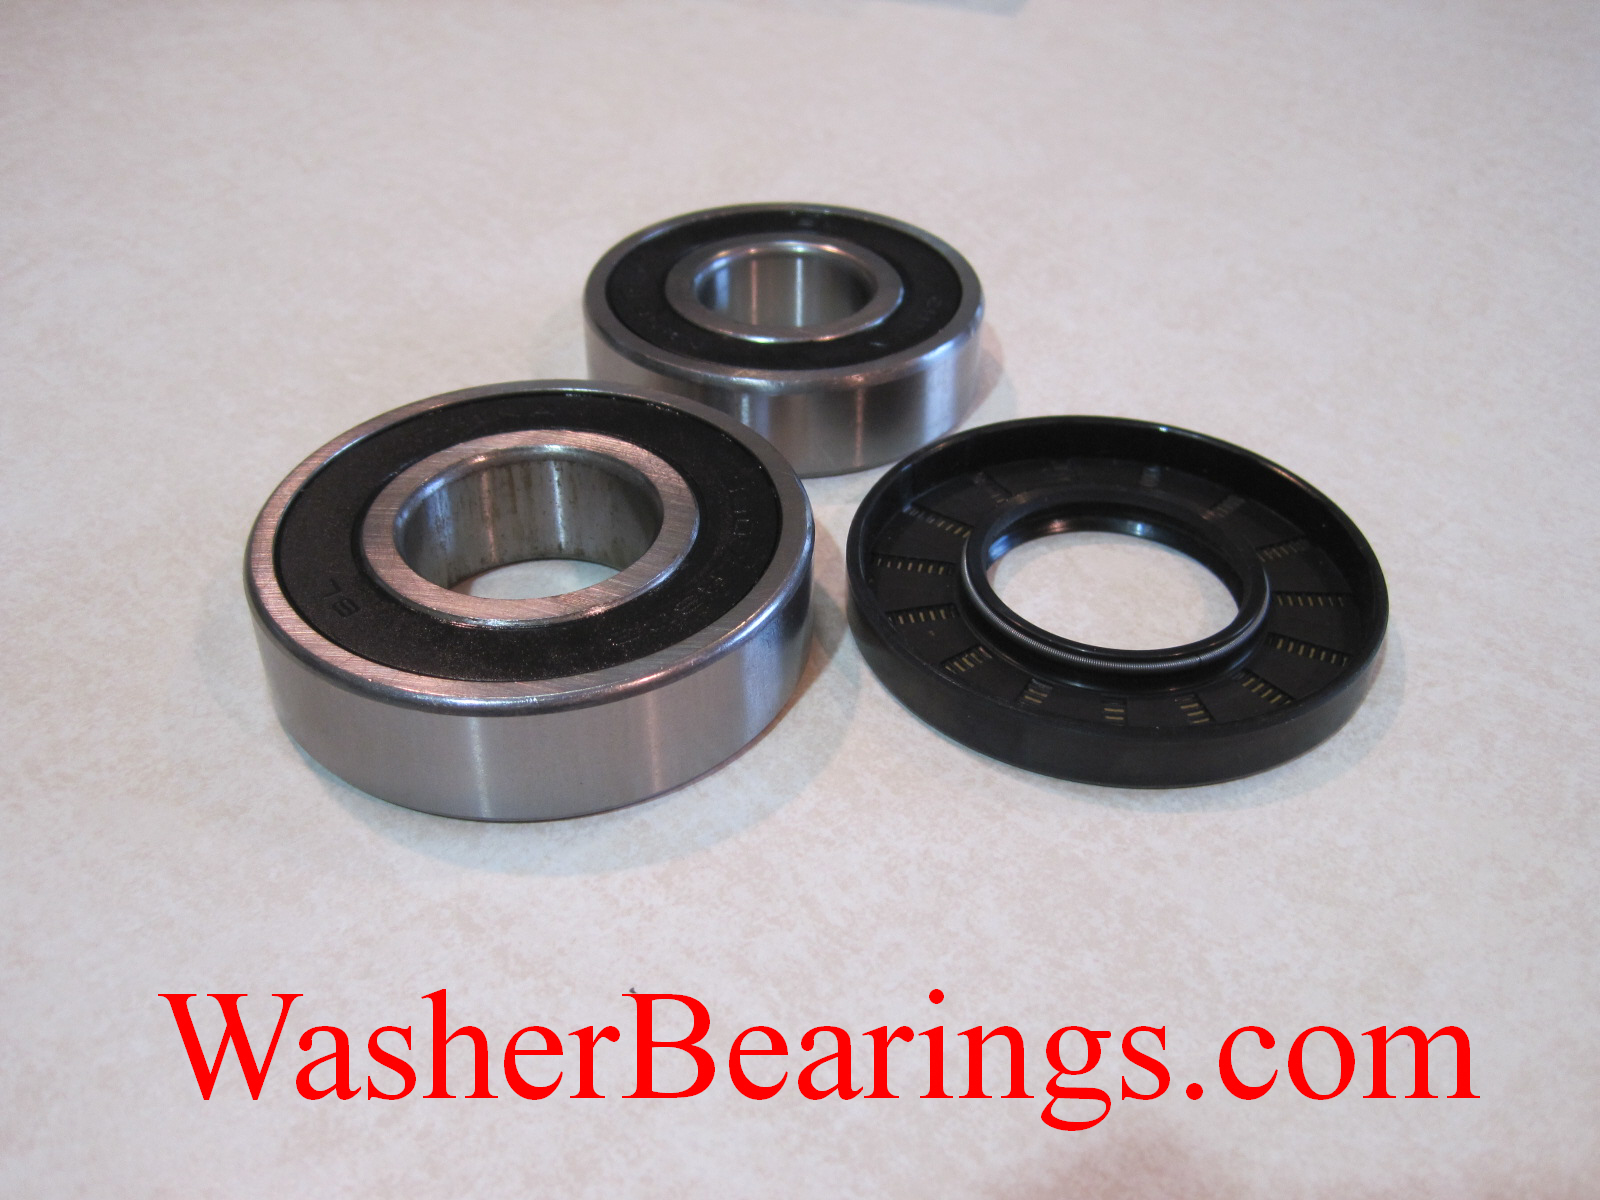 Ghw9400pw2 Bearing Replacement Maytag Neptune Washer Repair